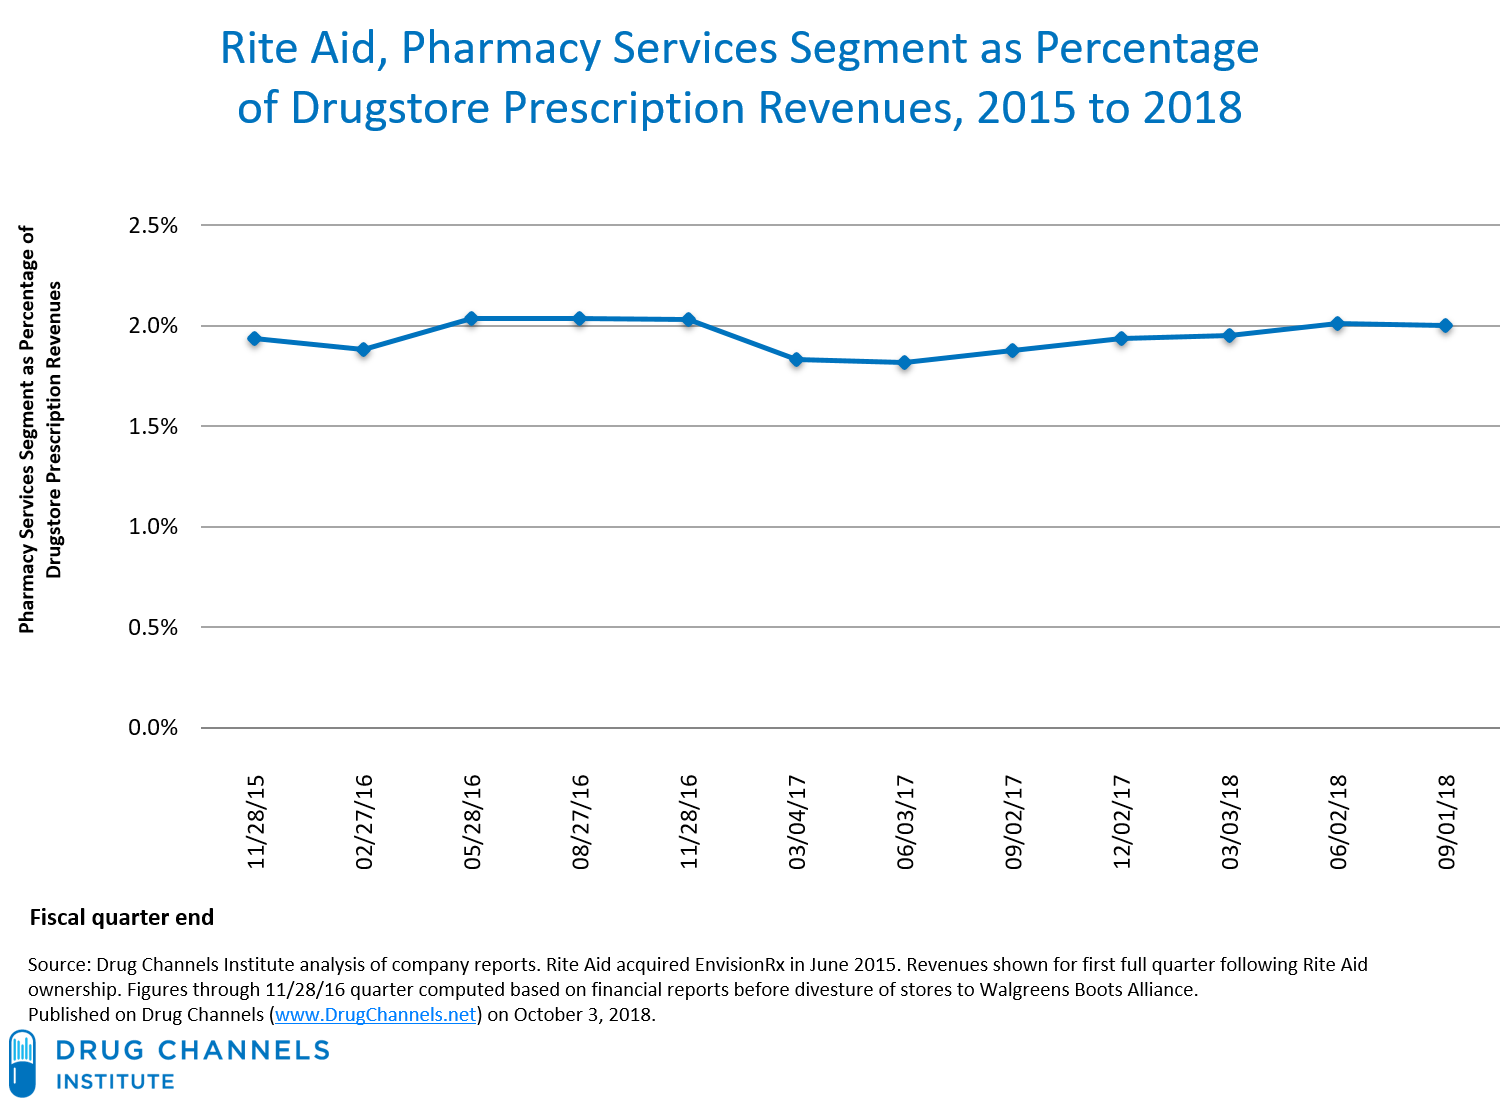 Drug Channels: Does Rite Aid Have the Grit to Succeed With Its